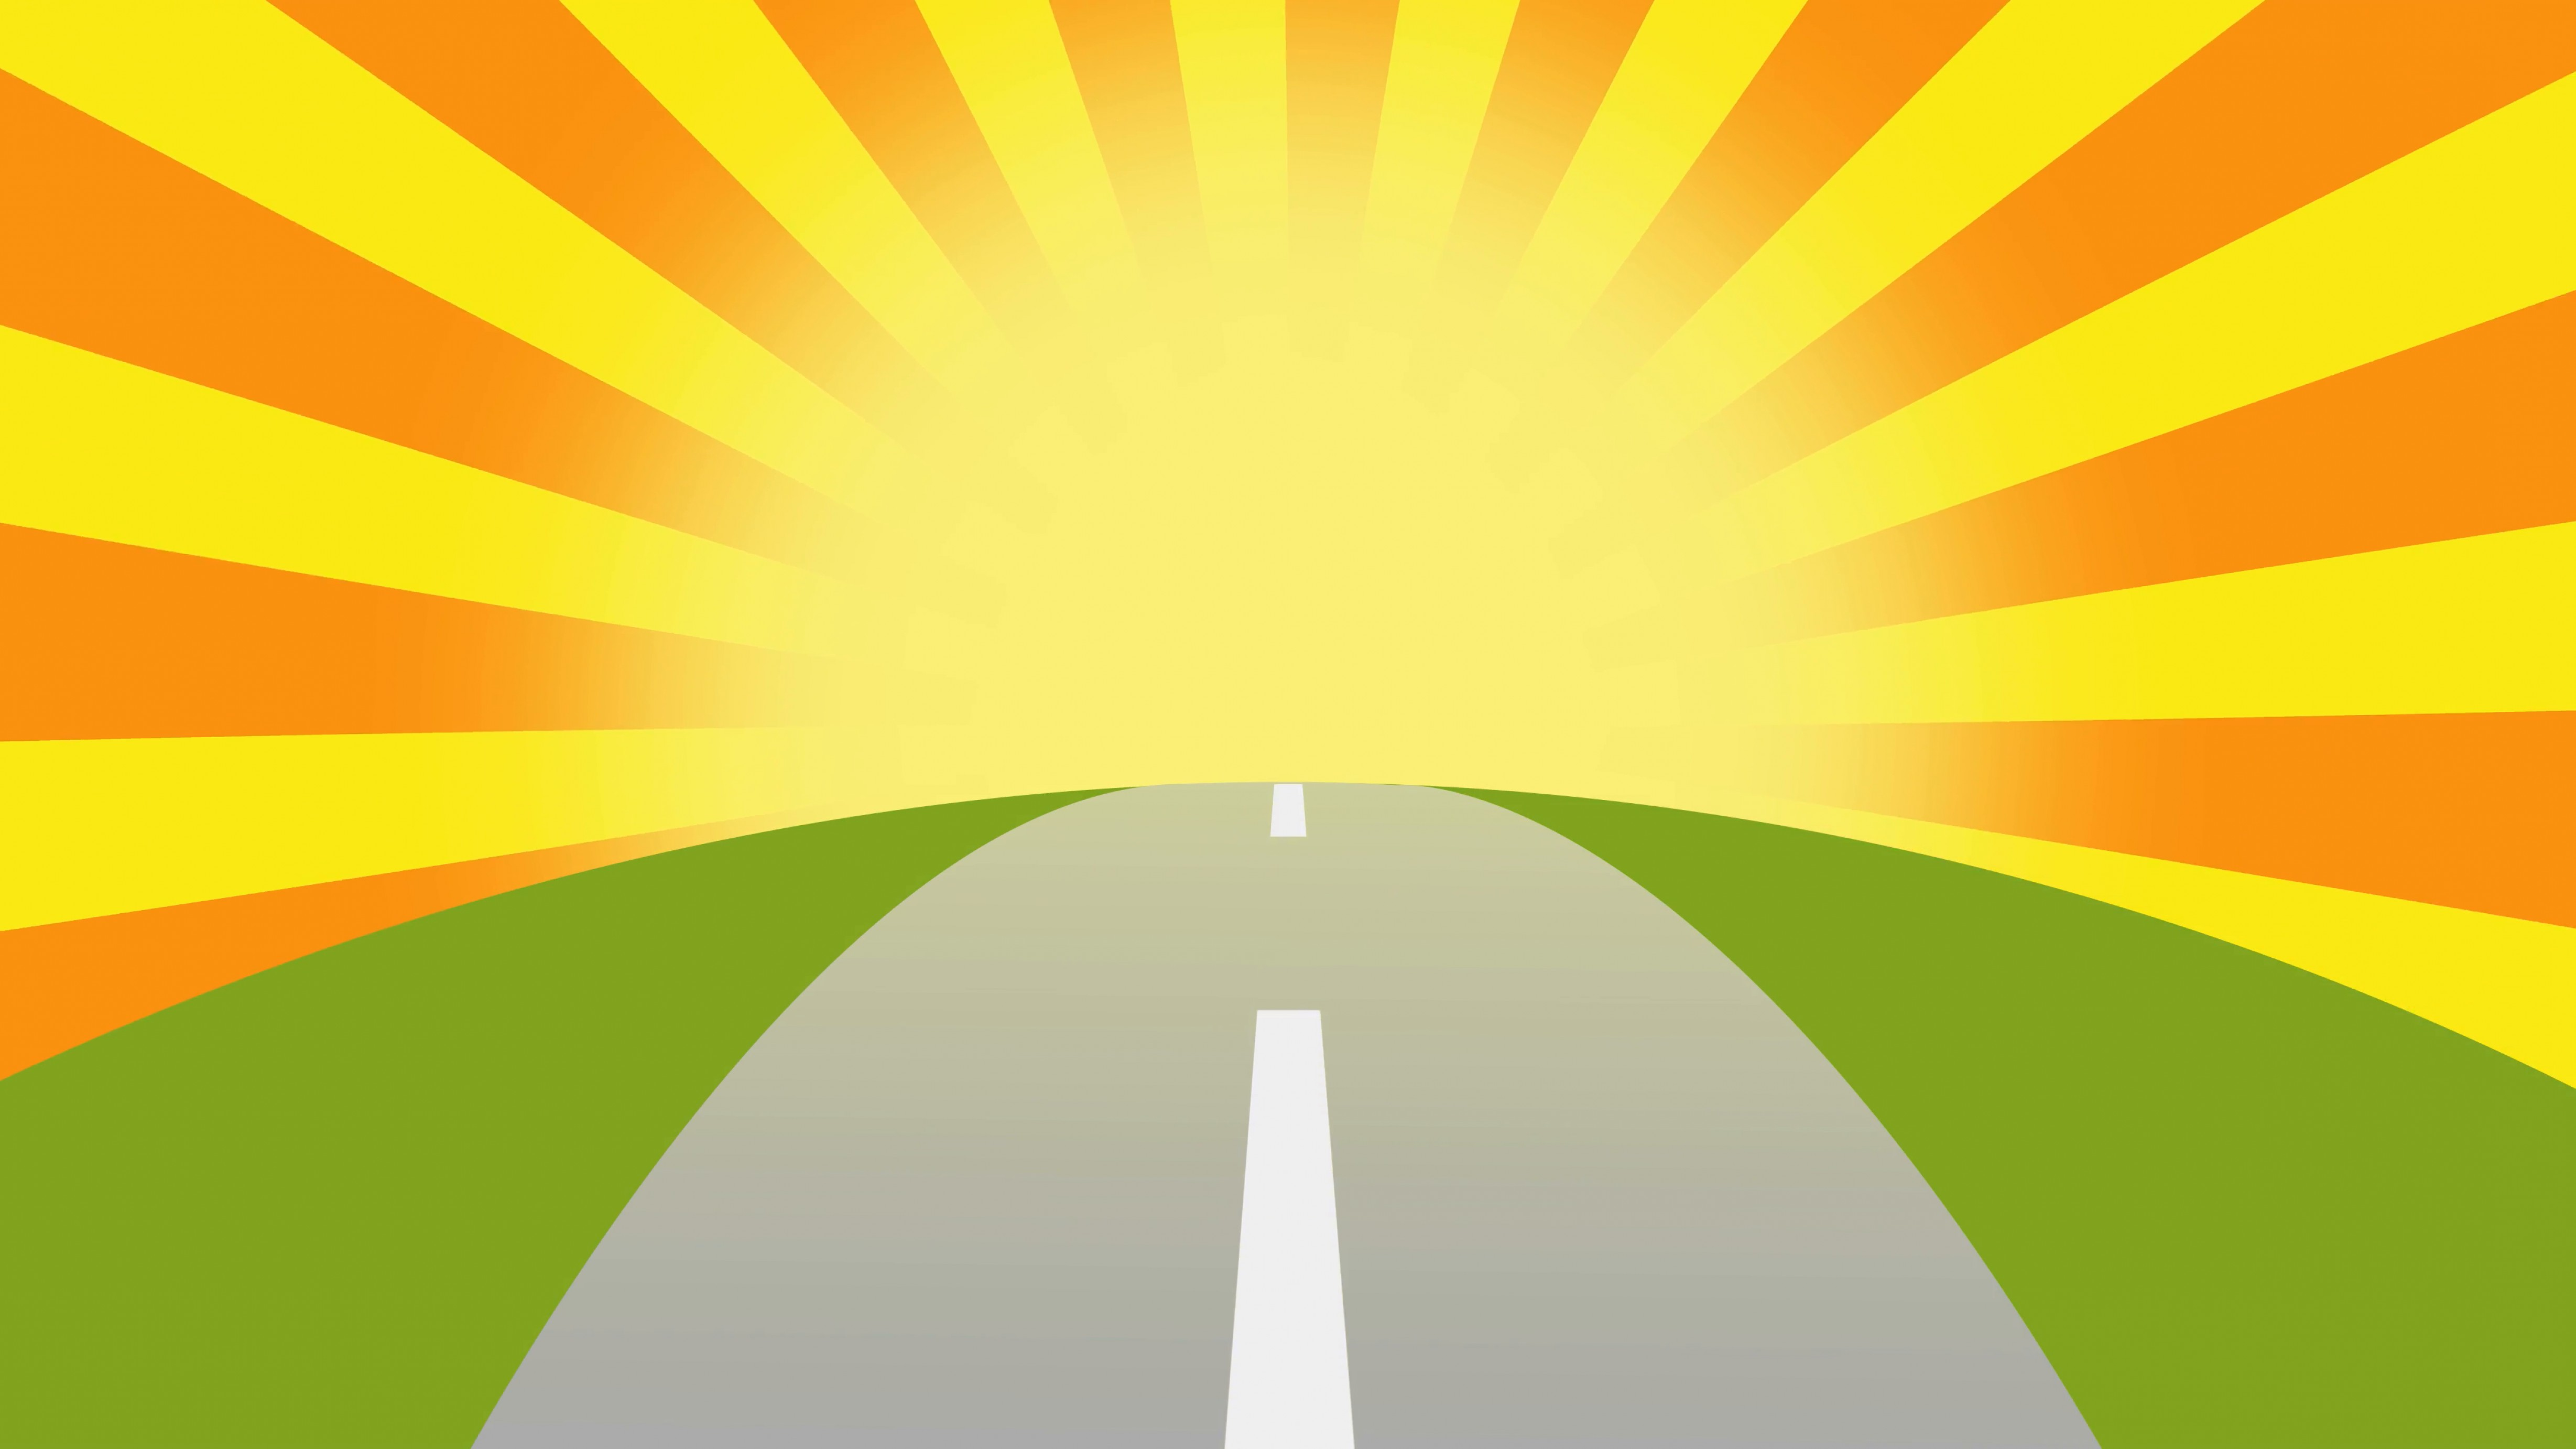 Sunset Road Background Vector: Animated Road On A Sunset With Space For Your Object Text Or Logo Seamlessly Loop Colorful Cartoon Nature Background Rbvjardiqlikev